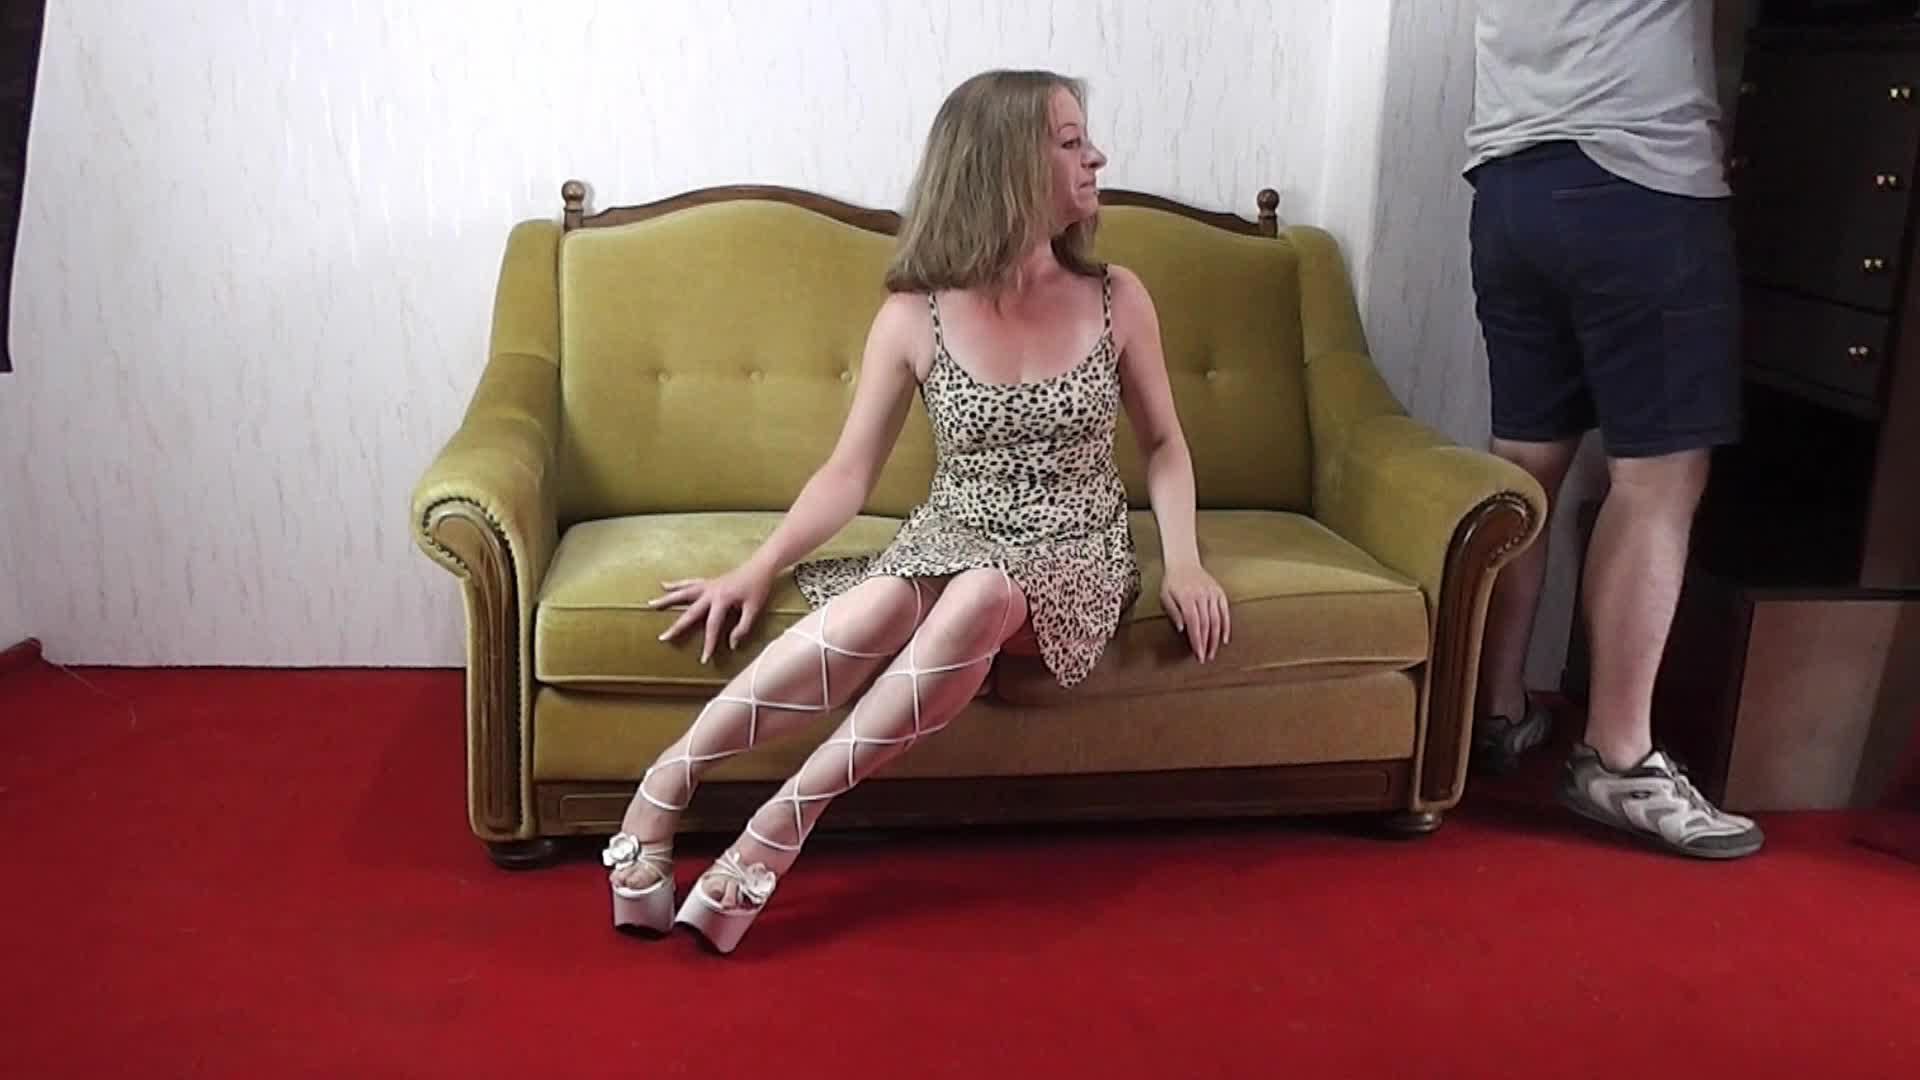 Clipspoolcom  Maria Tied With Towels 12-3662